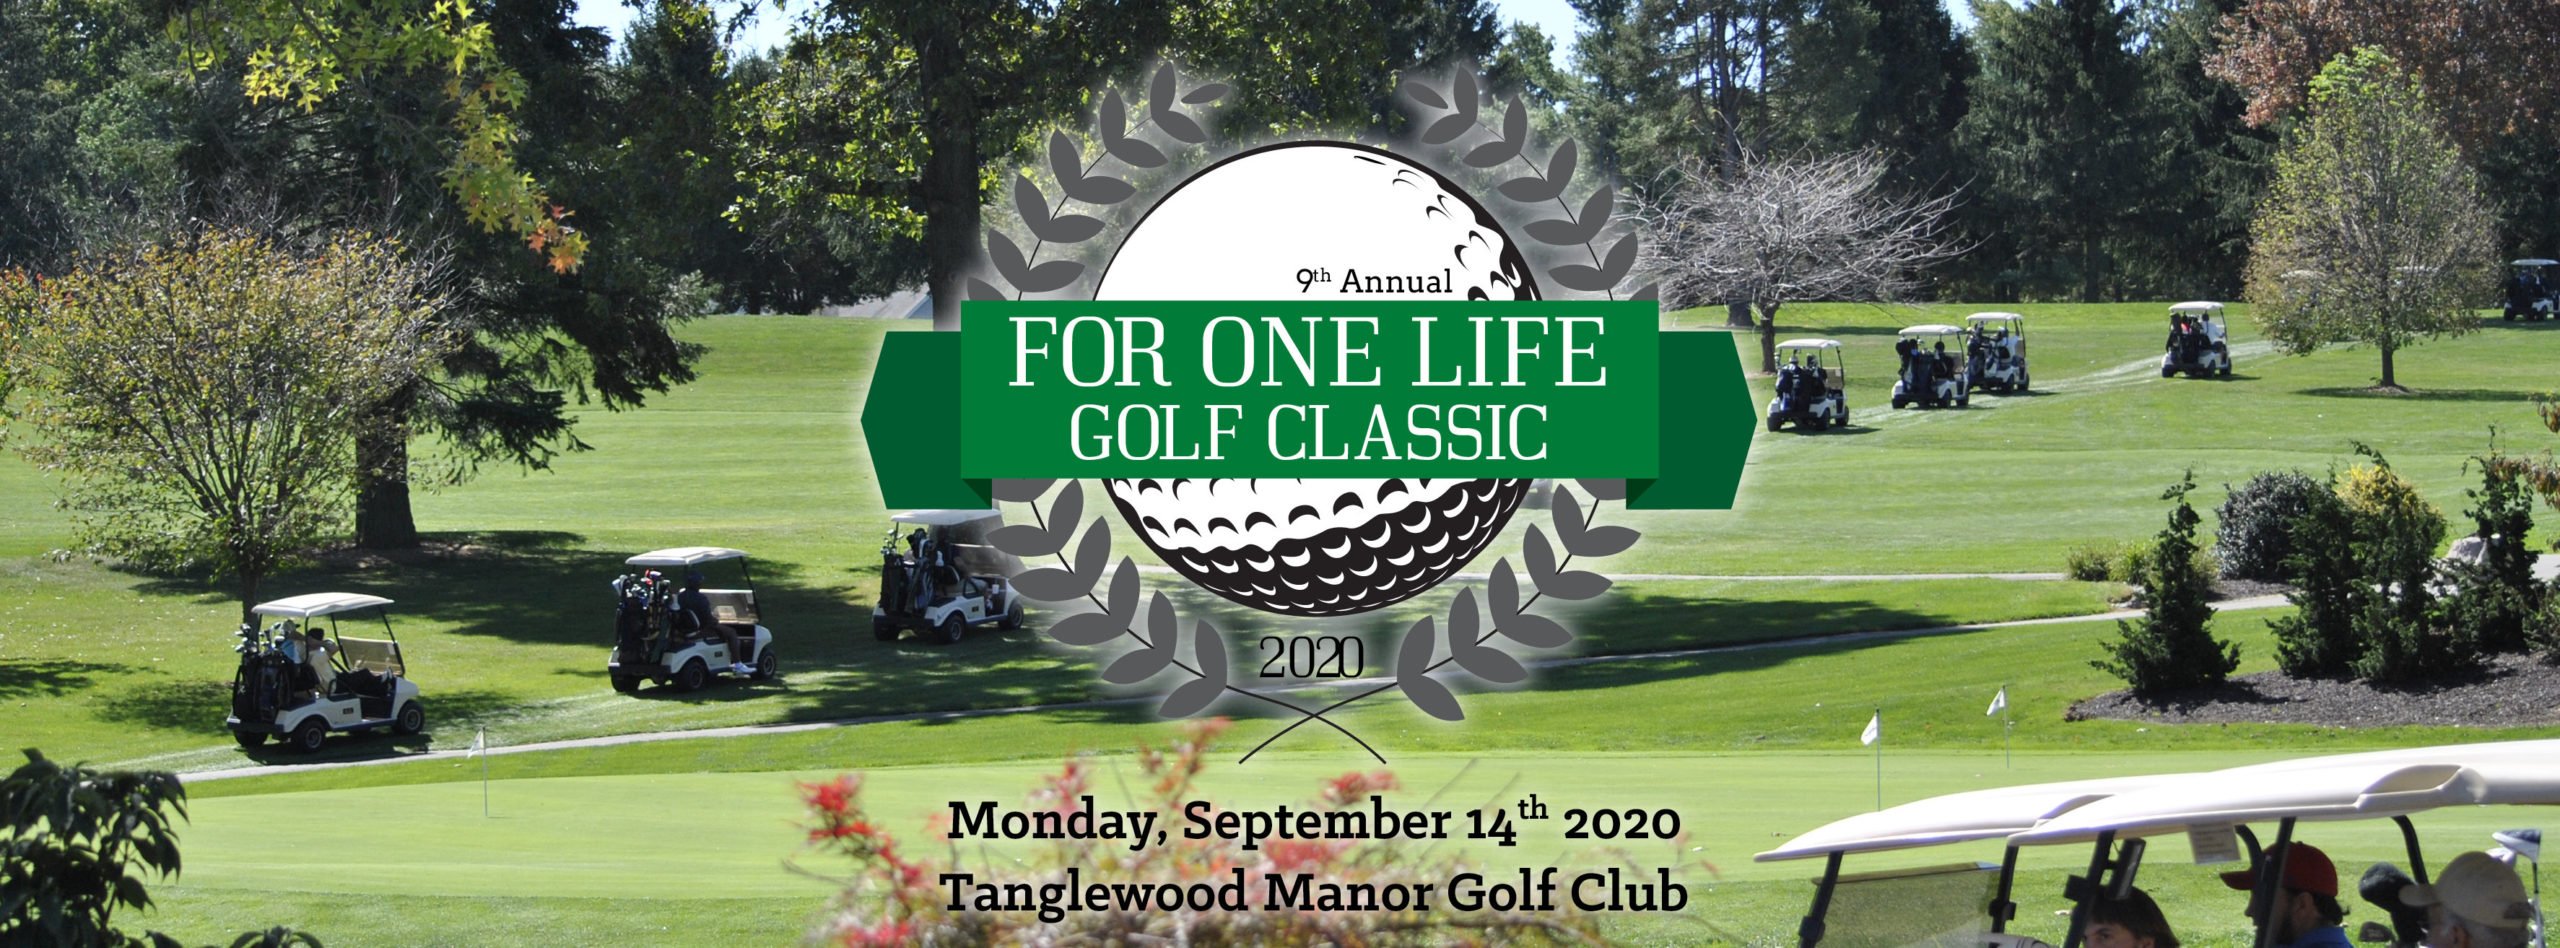 2020 For One Life Golf Classic